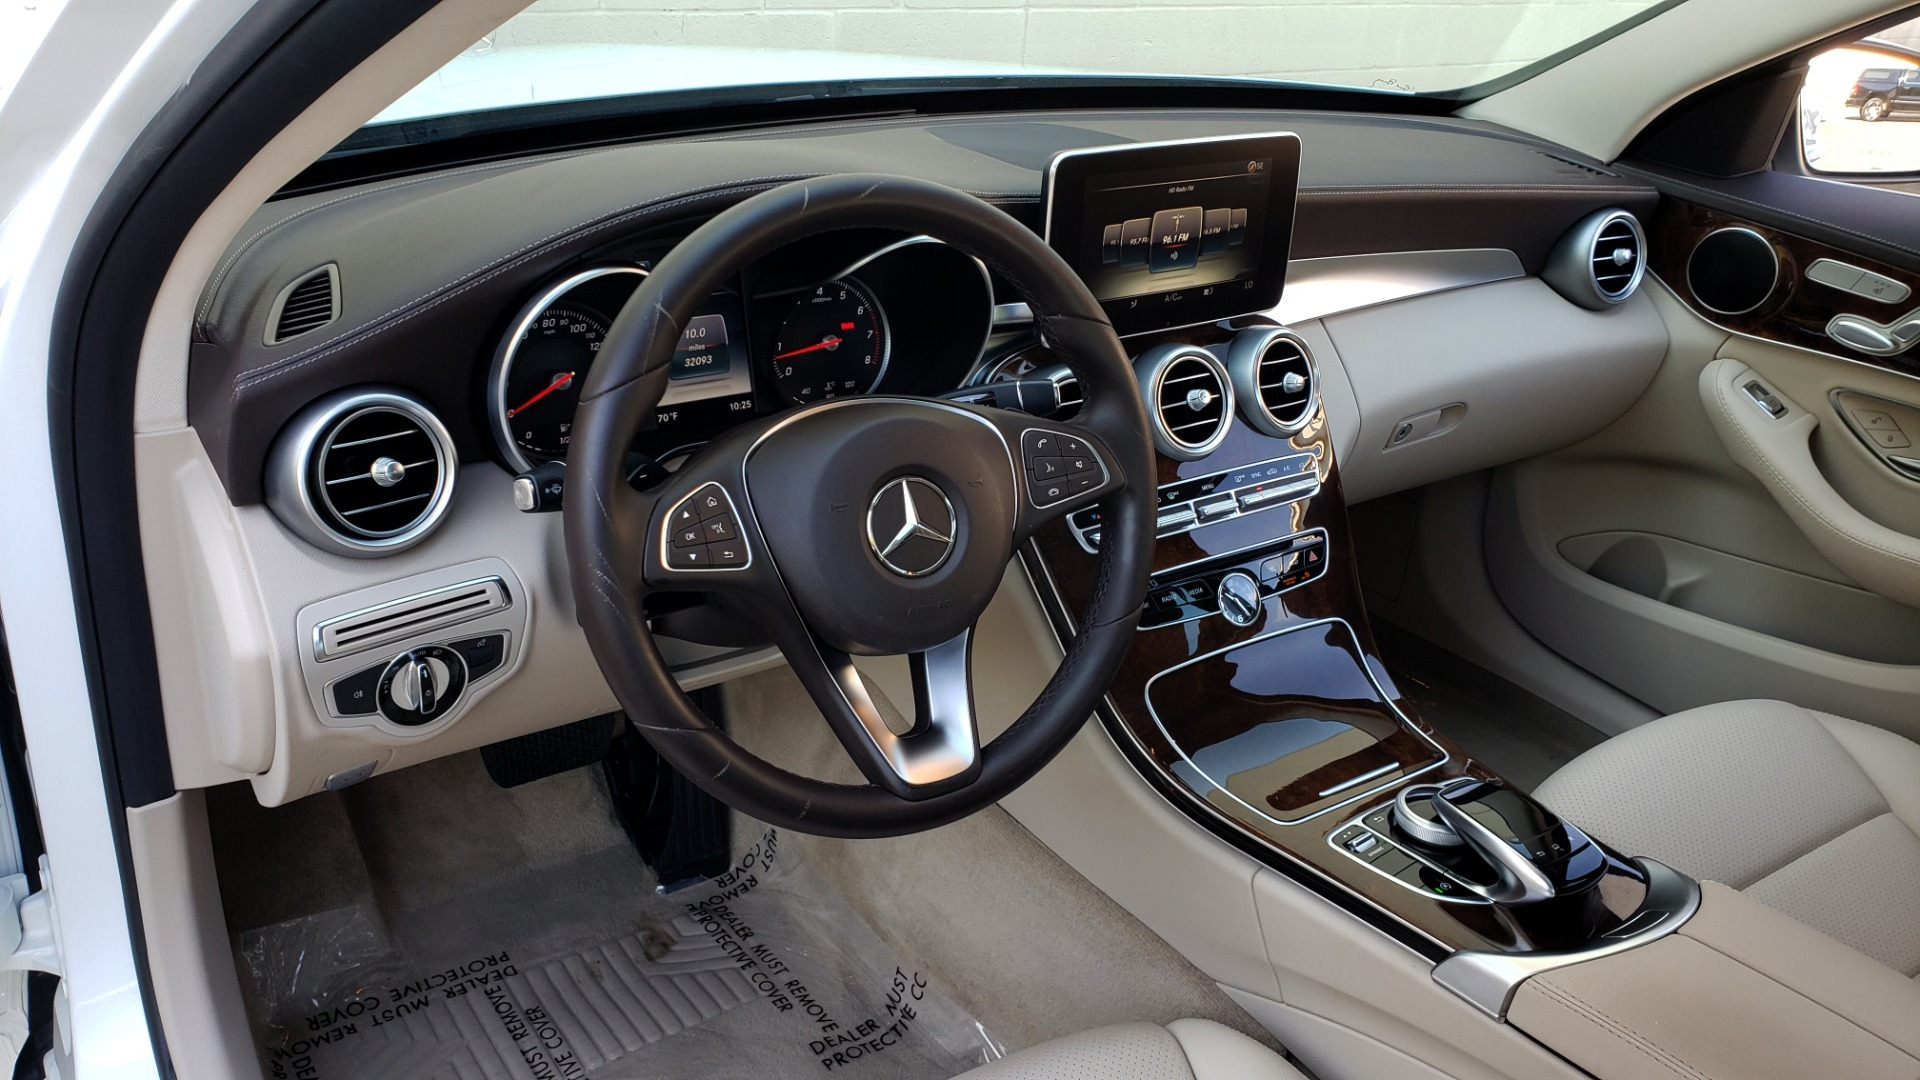 Used 2016 Mercedes-Benz C-Class C 300 LUXURY / NAV / PANO-ROOF / REARVIEW / BSM / HTD STS for sale Sold at Formula Imports in Charlotte NC 28227 29